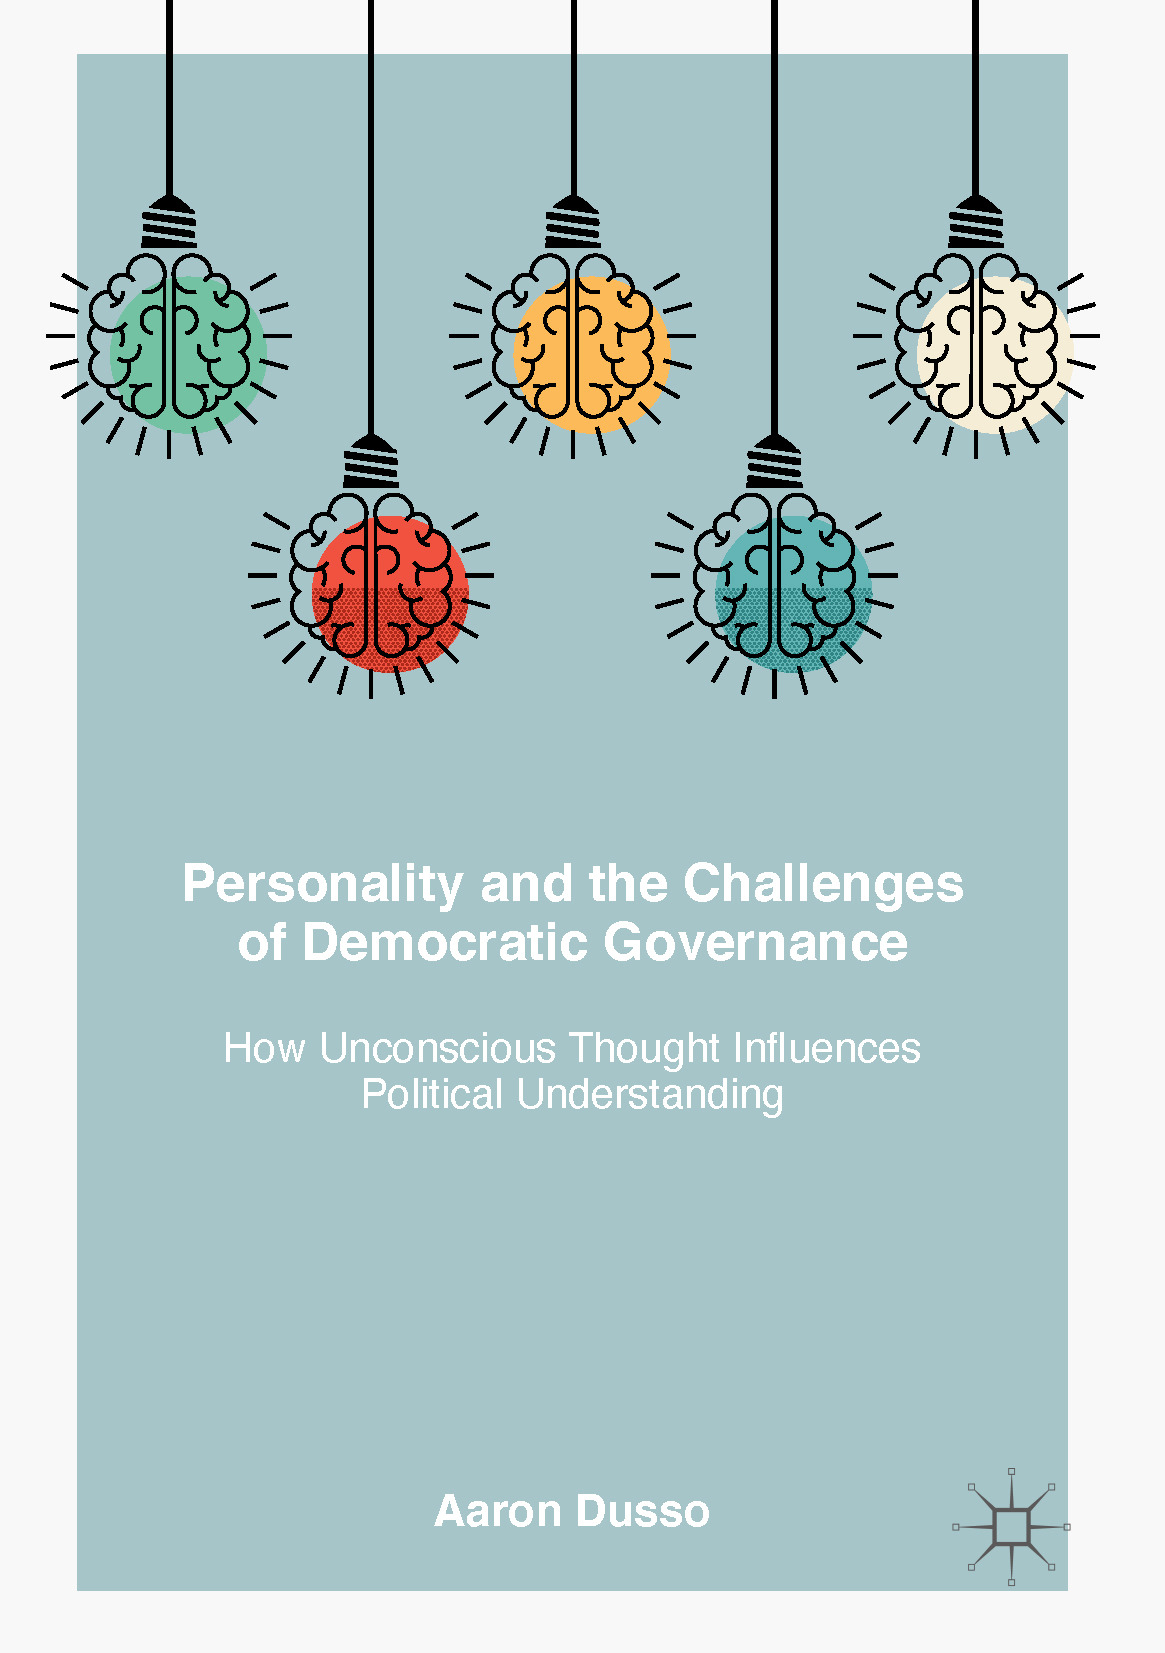 Dusso, Aaron - Personality and the Challenges of Democratic Governance, ebook